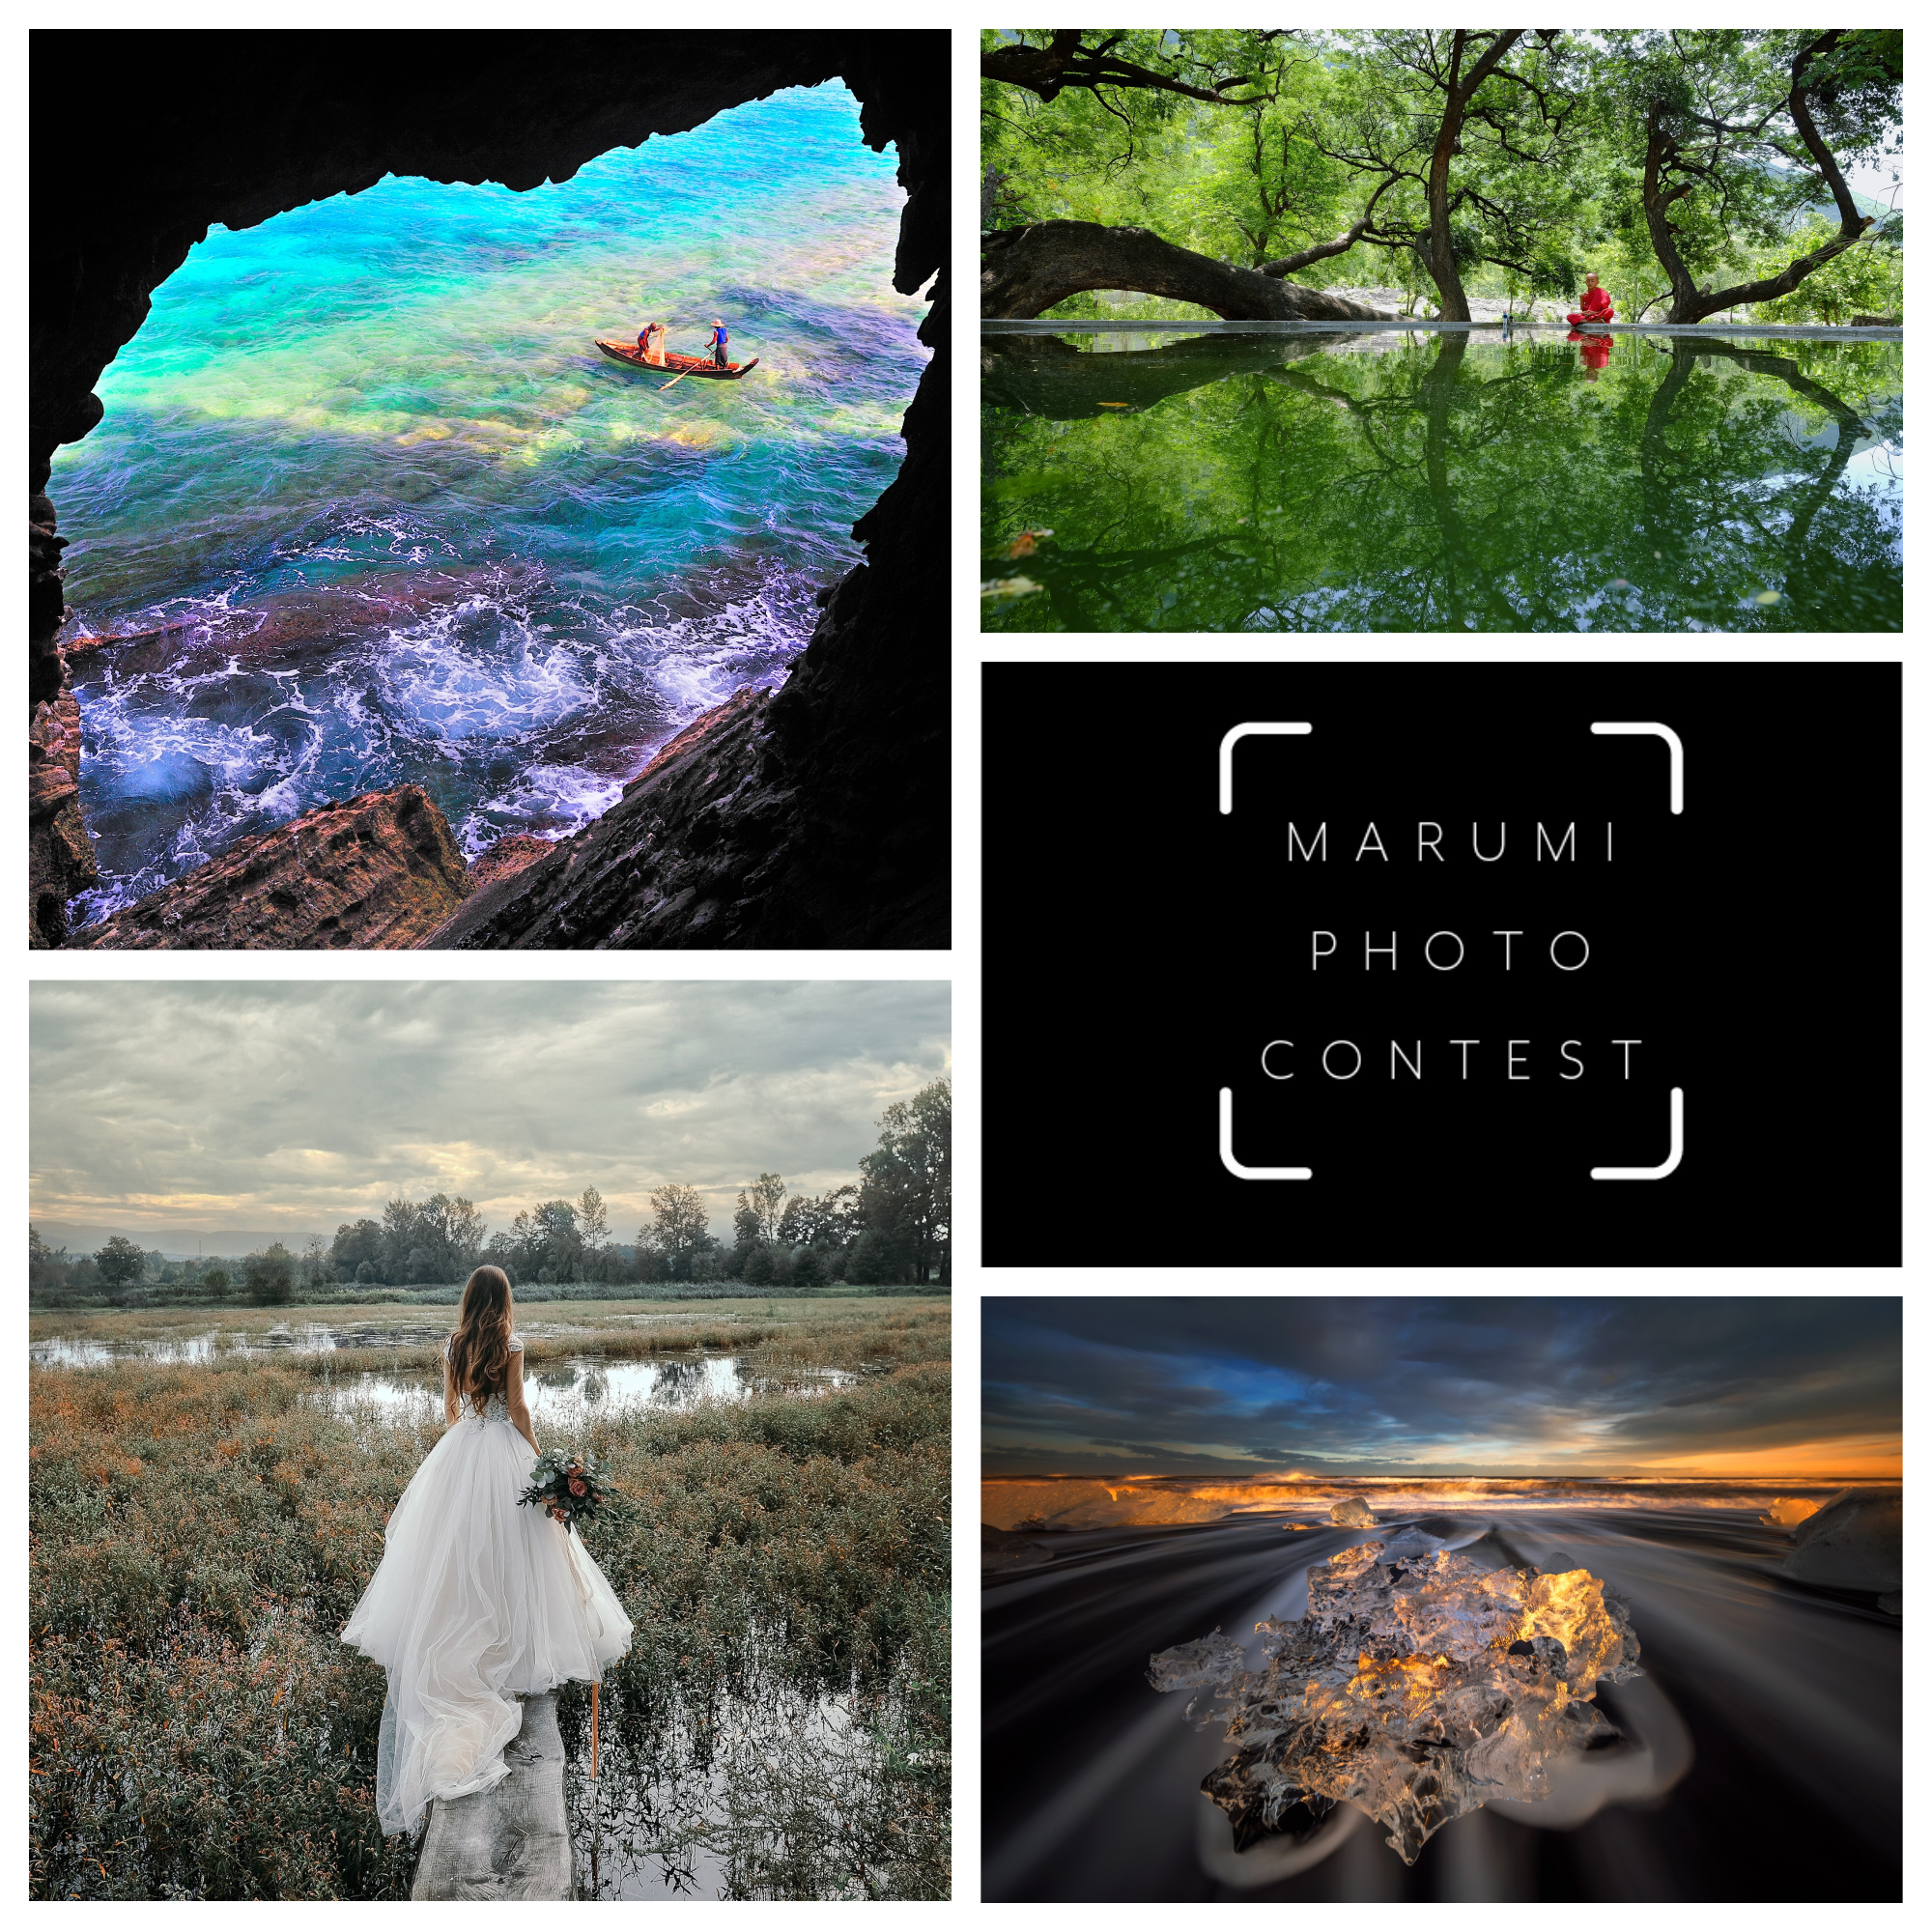 """MARUMI 7TH PHOTO CONTEST """"ANY PORTRAIT PHOTOGRAPHY WITH FILTERS"""""""